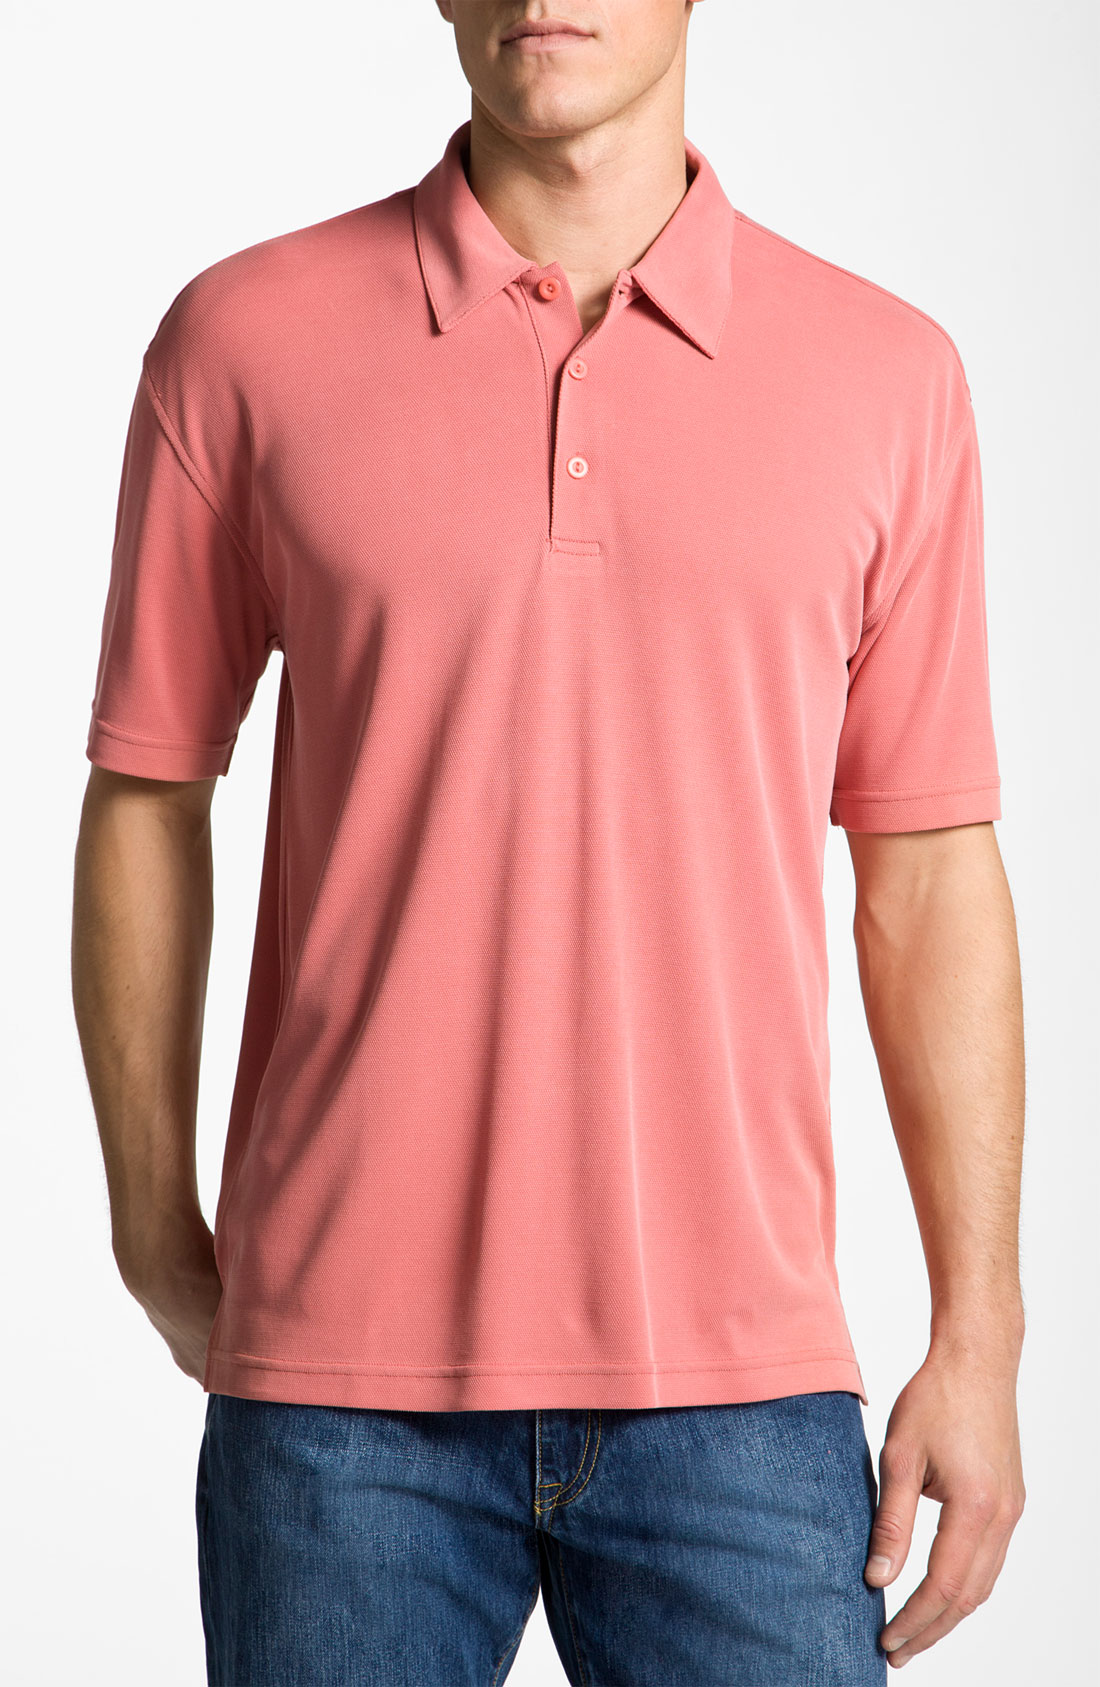 Burma Bibas Regular Fit Knit Polo In Pink For Men Coral